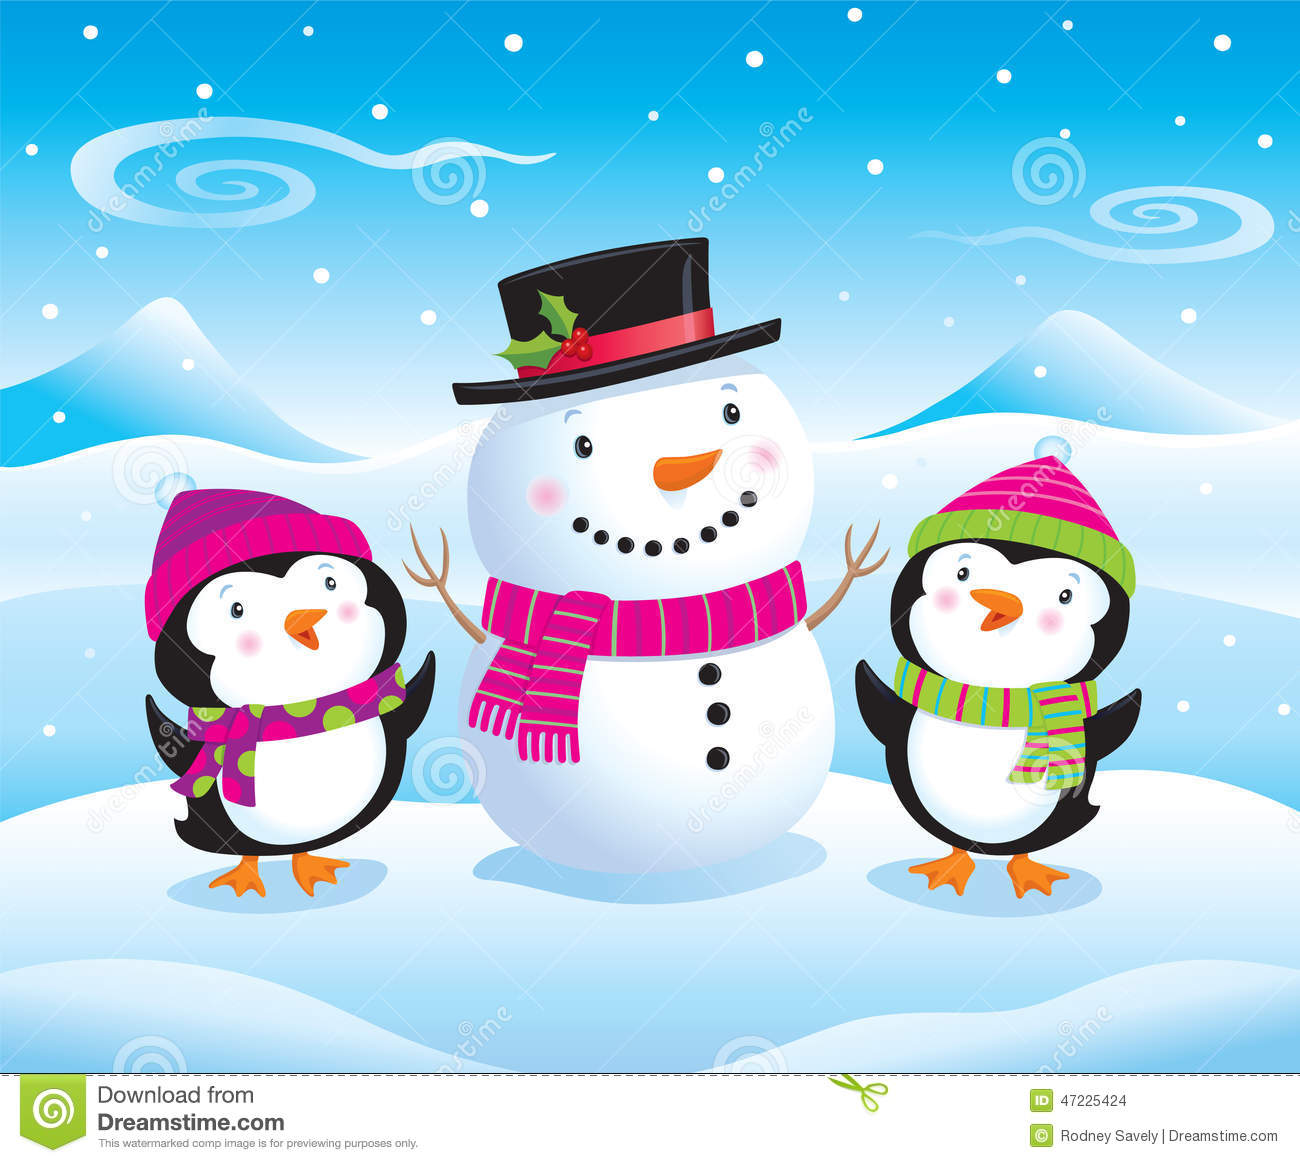 Cute looking snowman in top hat and scarf while snow is falling